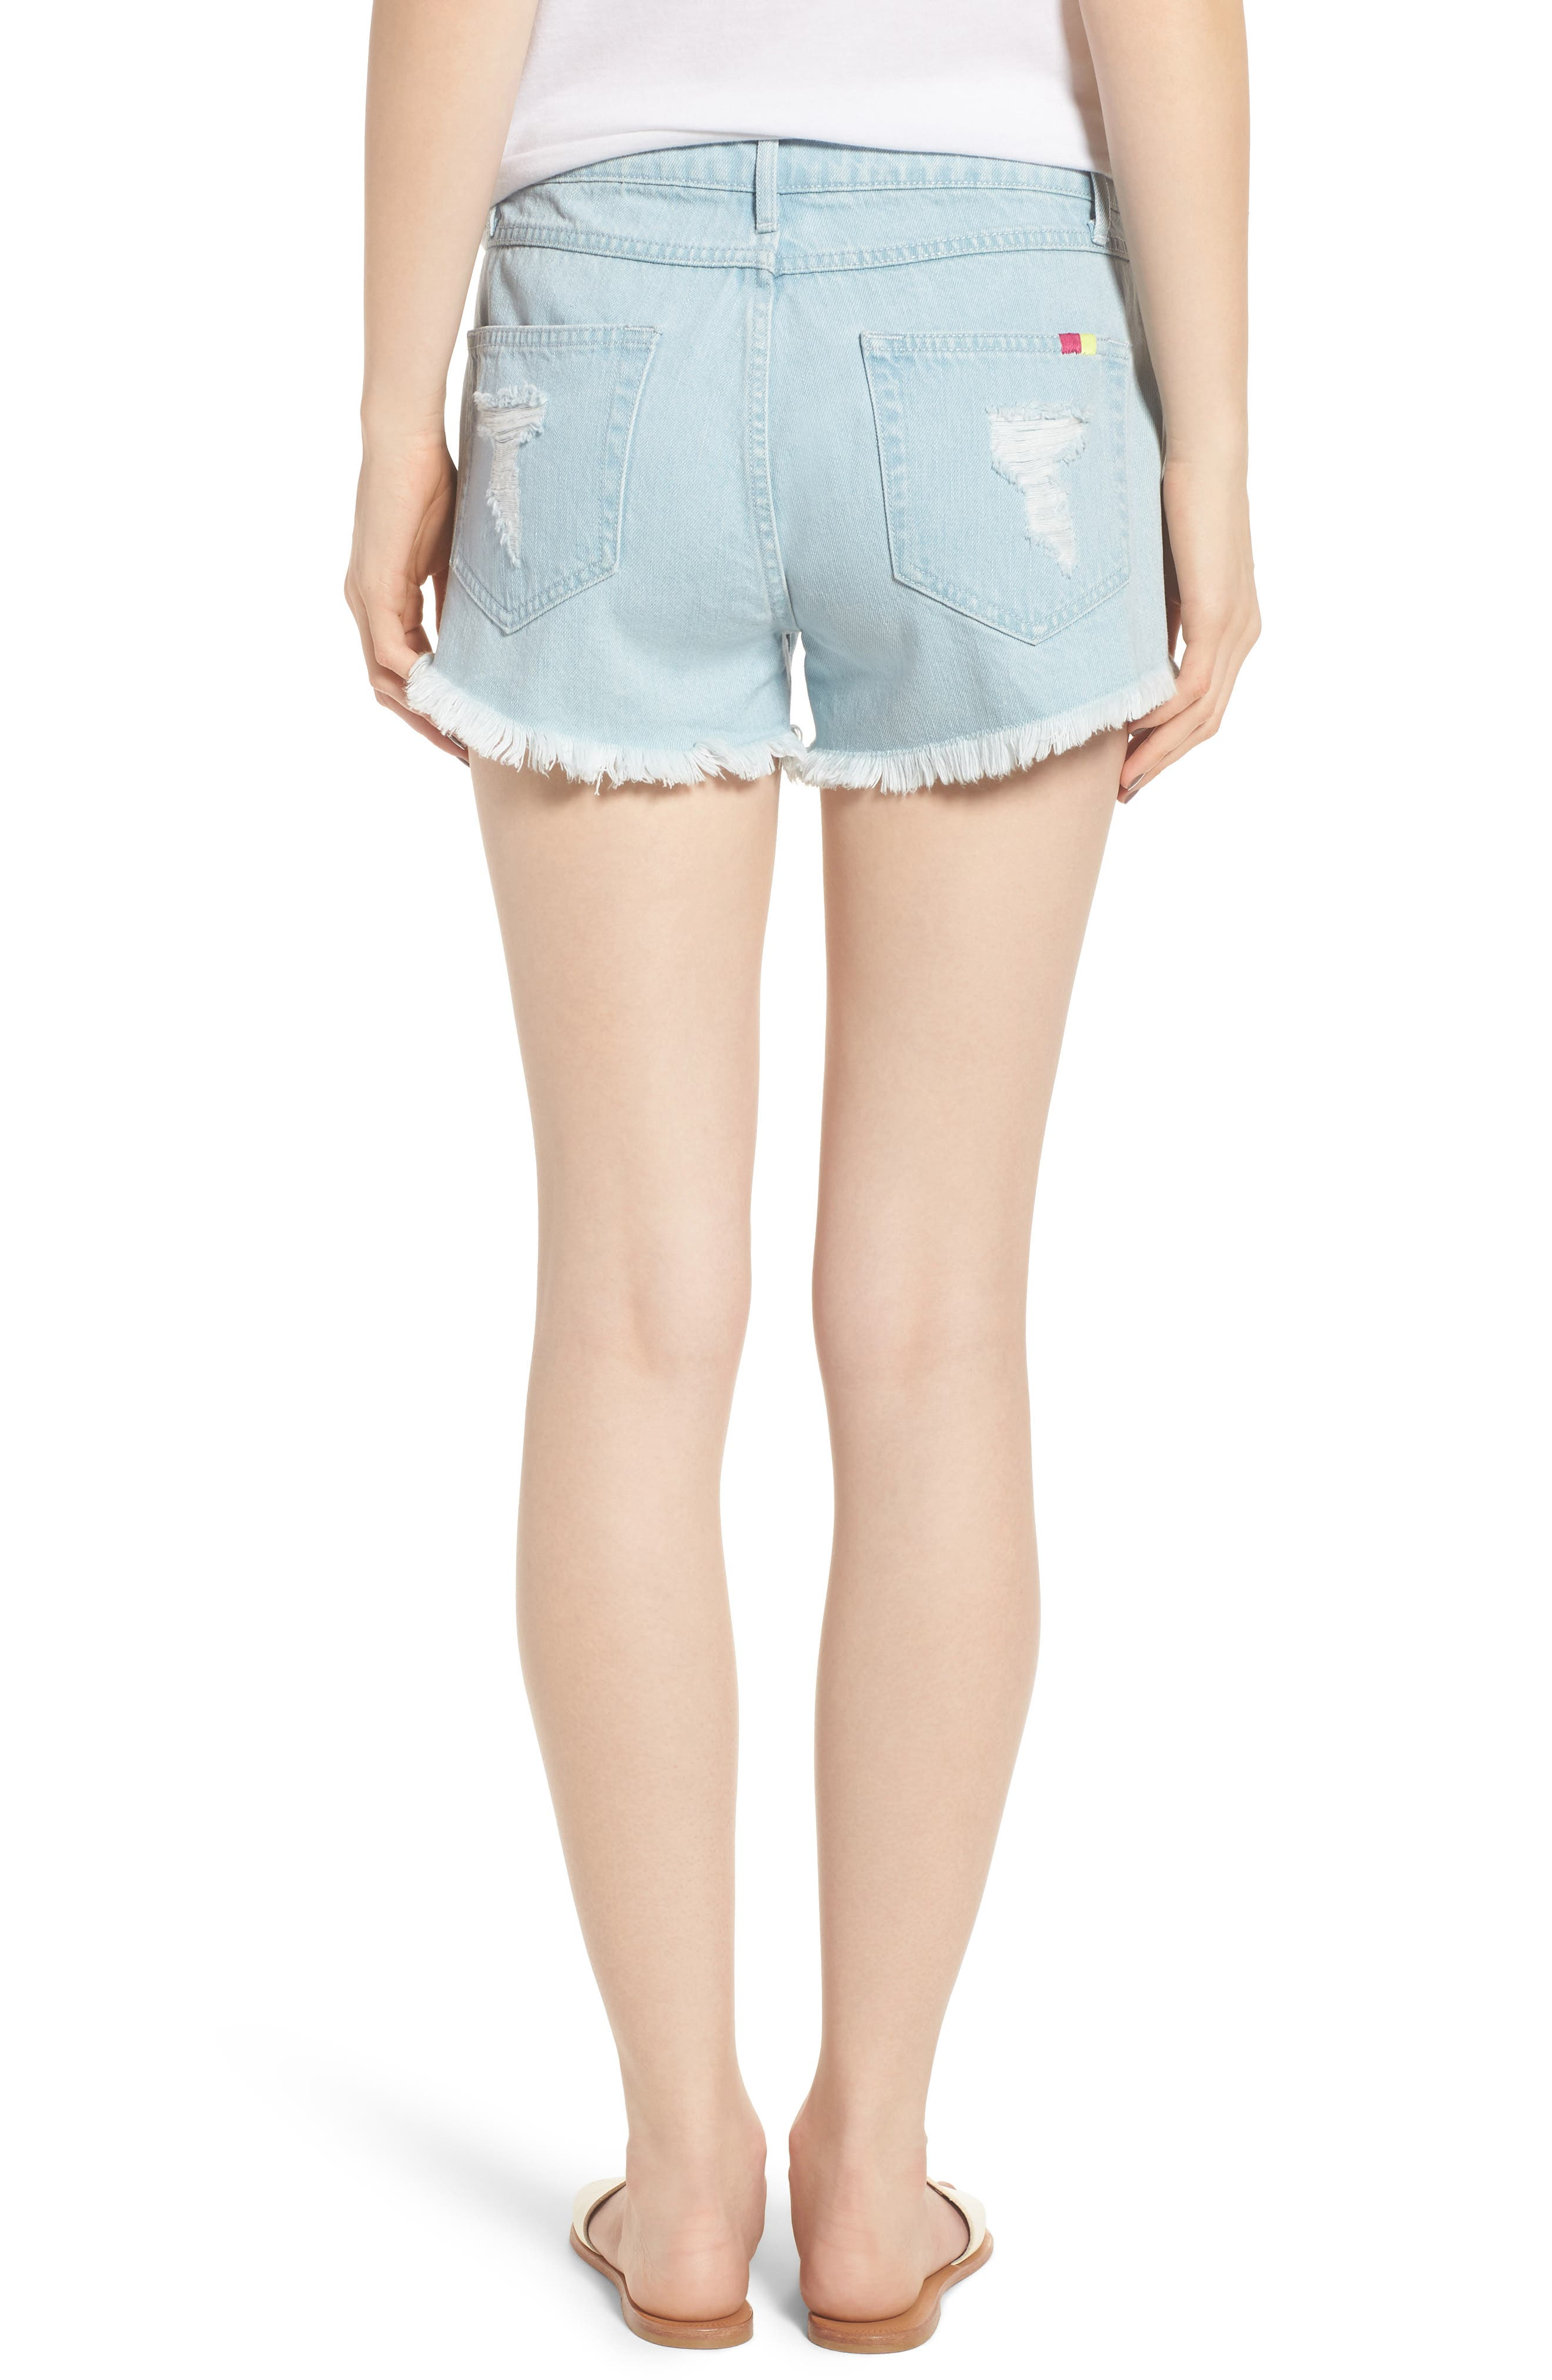 Cabo Cutoff Denim Shorts,                             Alternate thumbnail 2, color,                             400